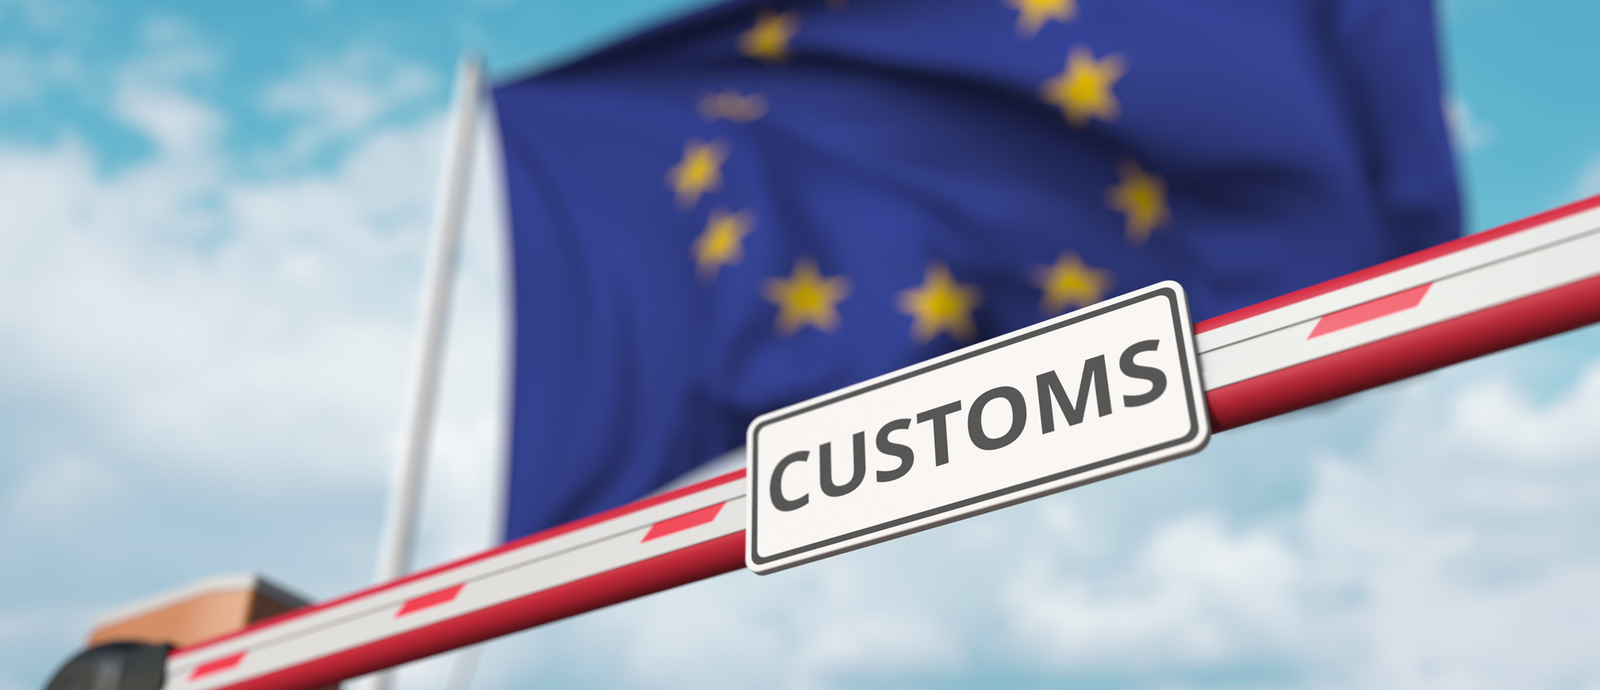 Read more about customs & VAT on import & export. We walk you through EORI number, customs value, customs rate, customs declaration & everything you need to know.